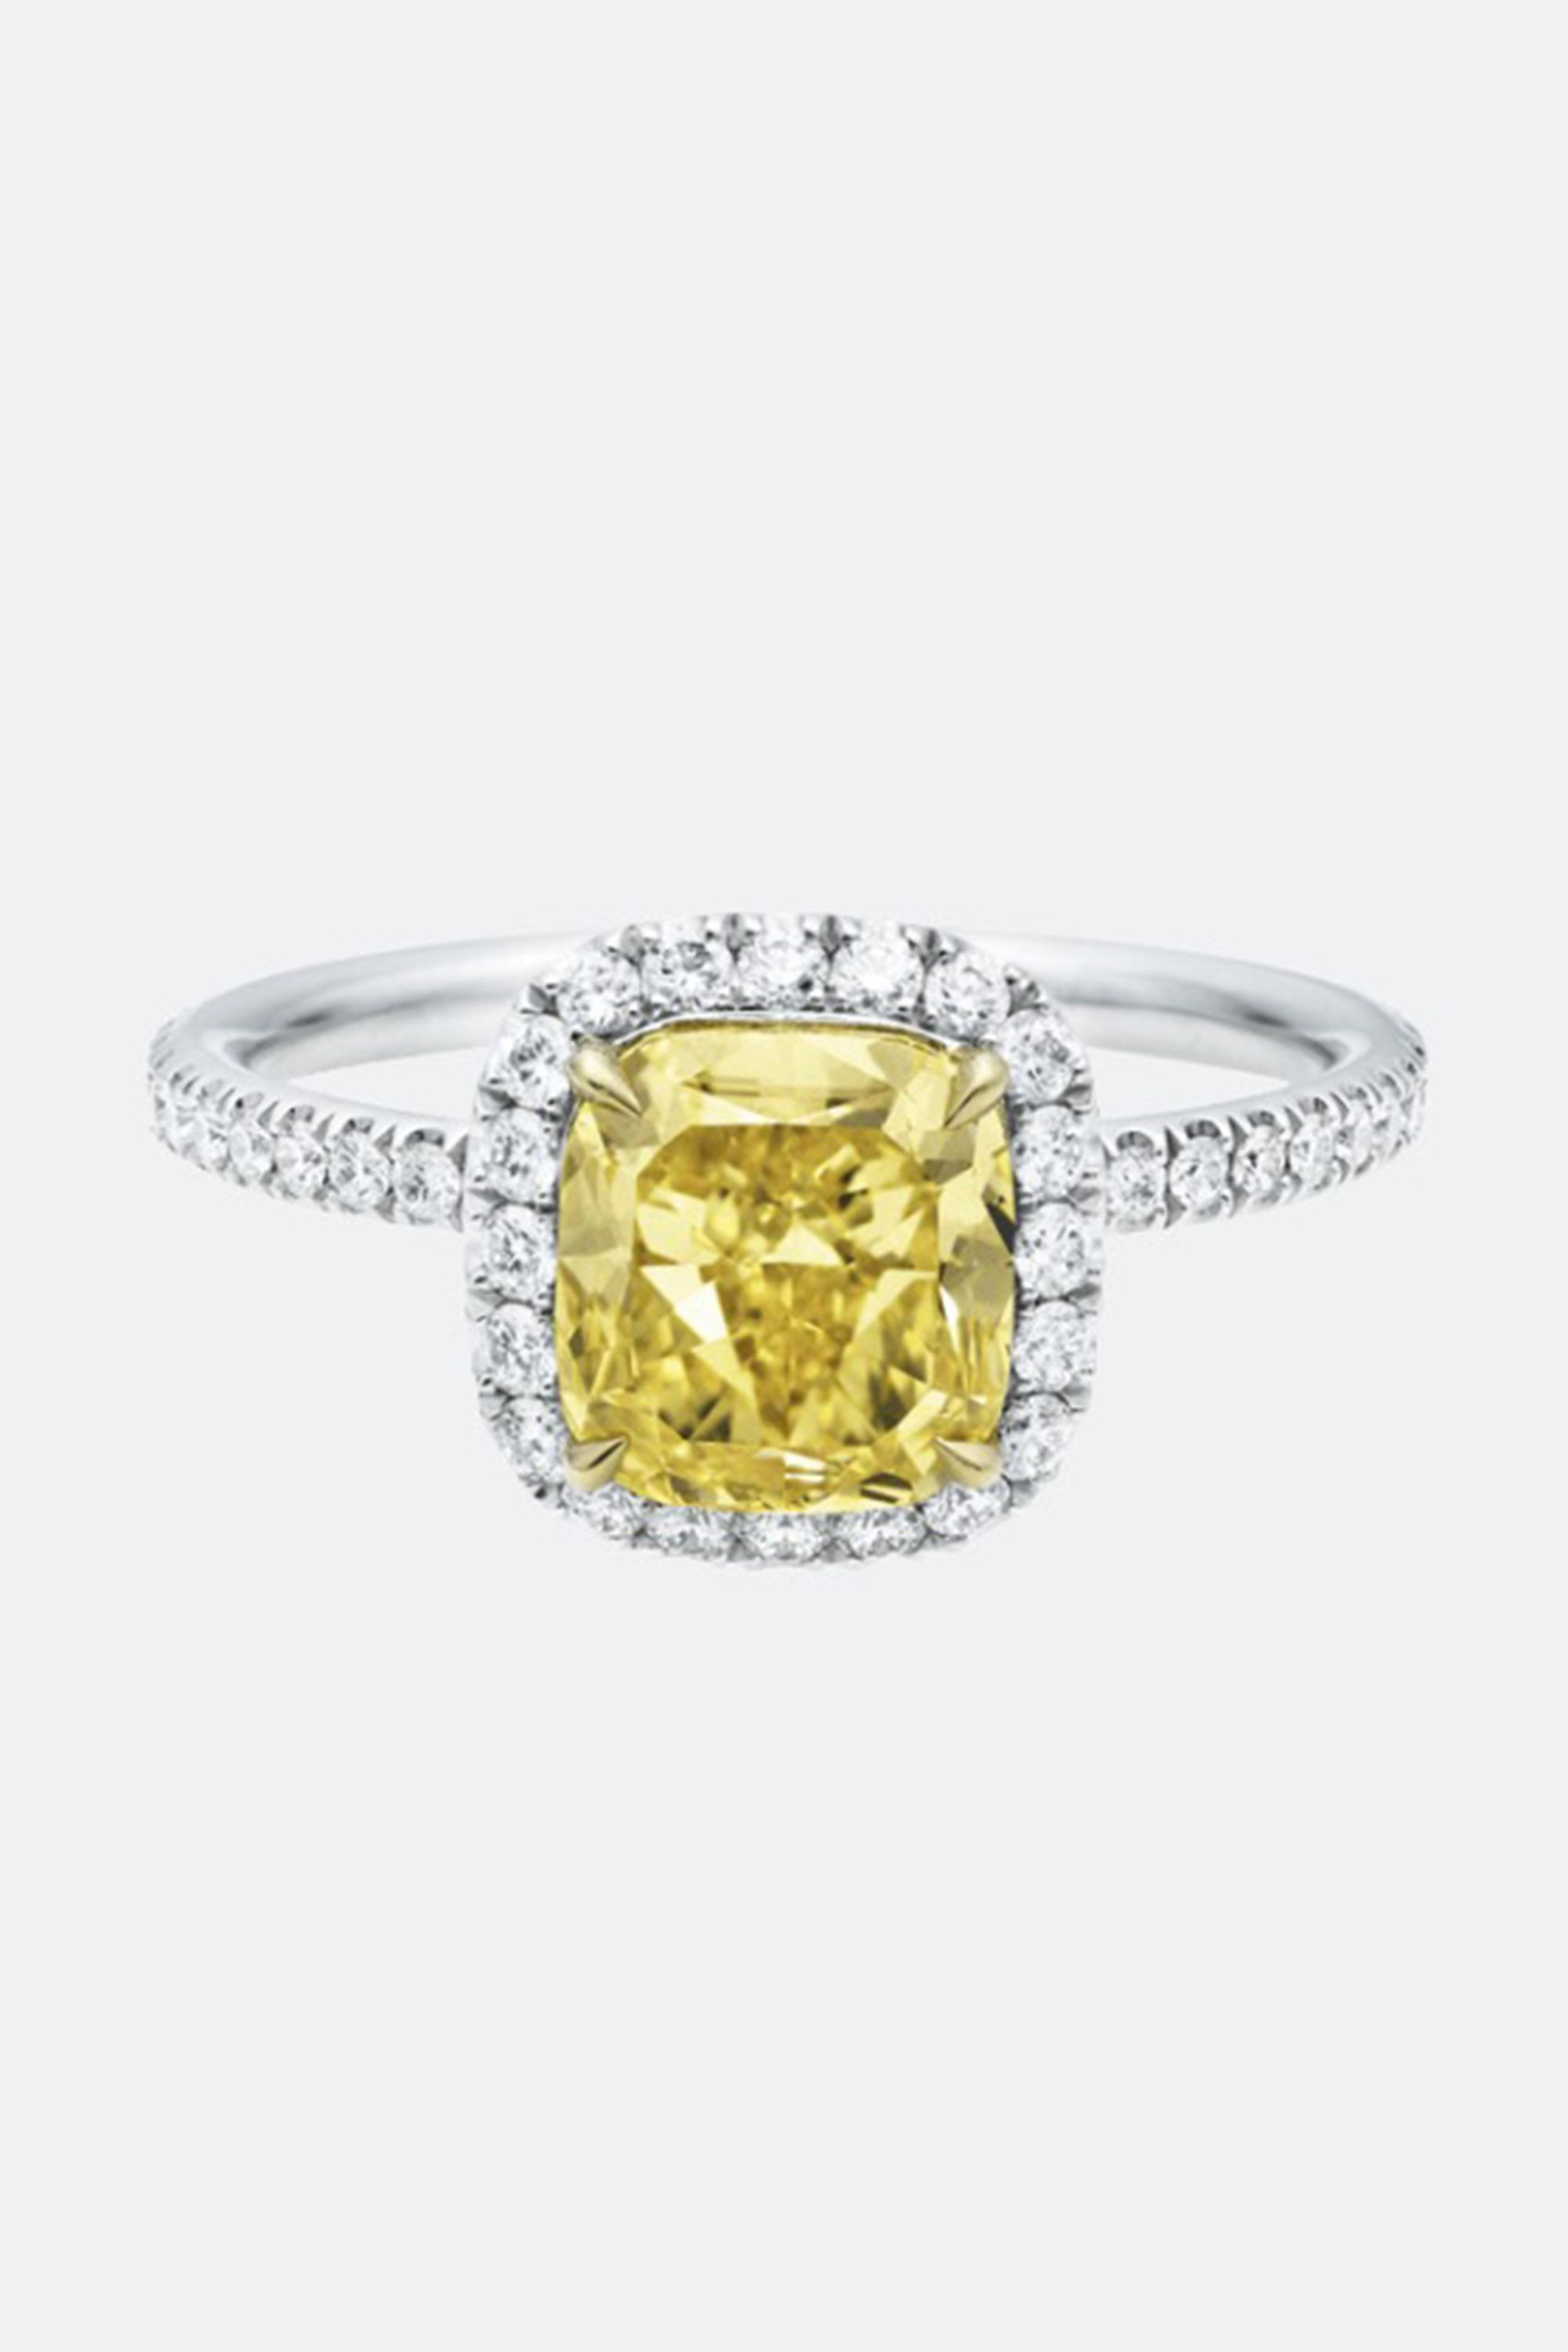 e32f2e17a8c Our guide to the best engagement rings - designer and classic engagement  rings